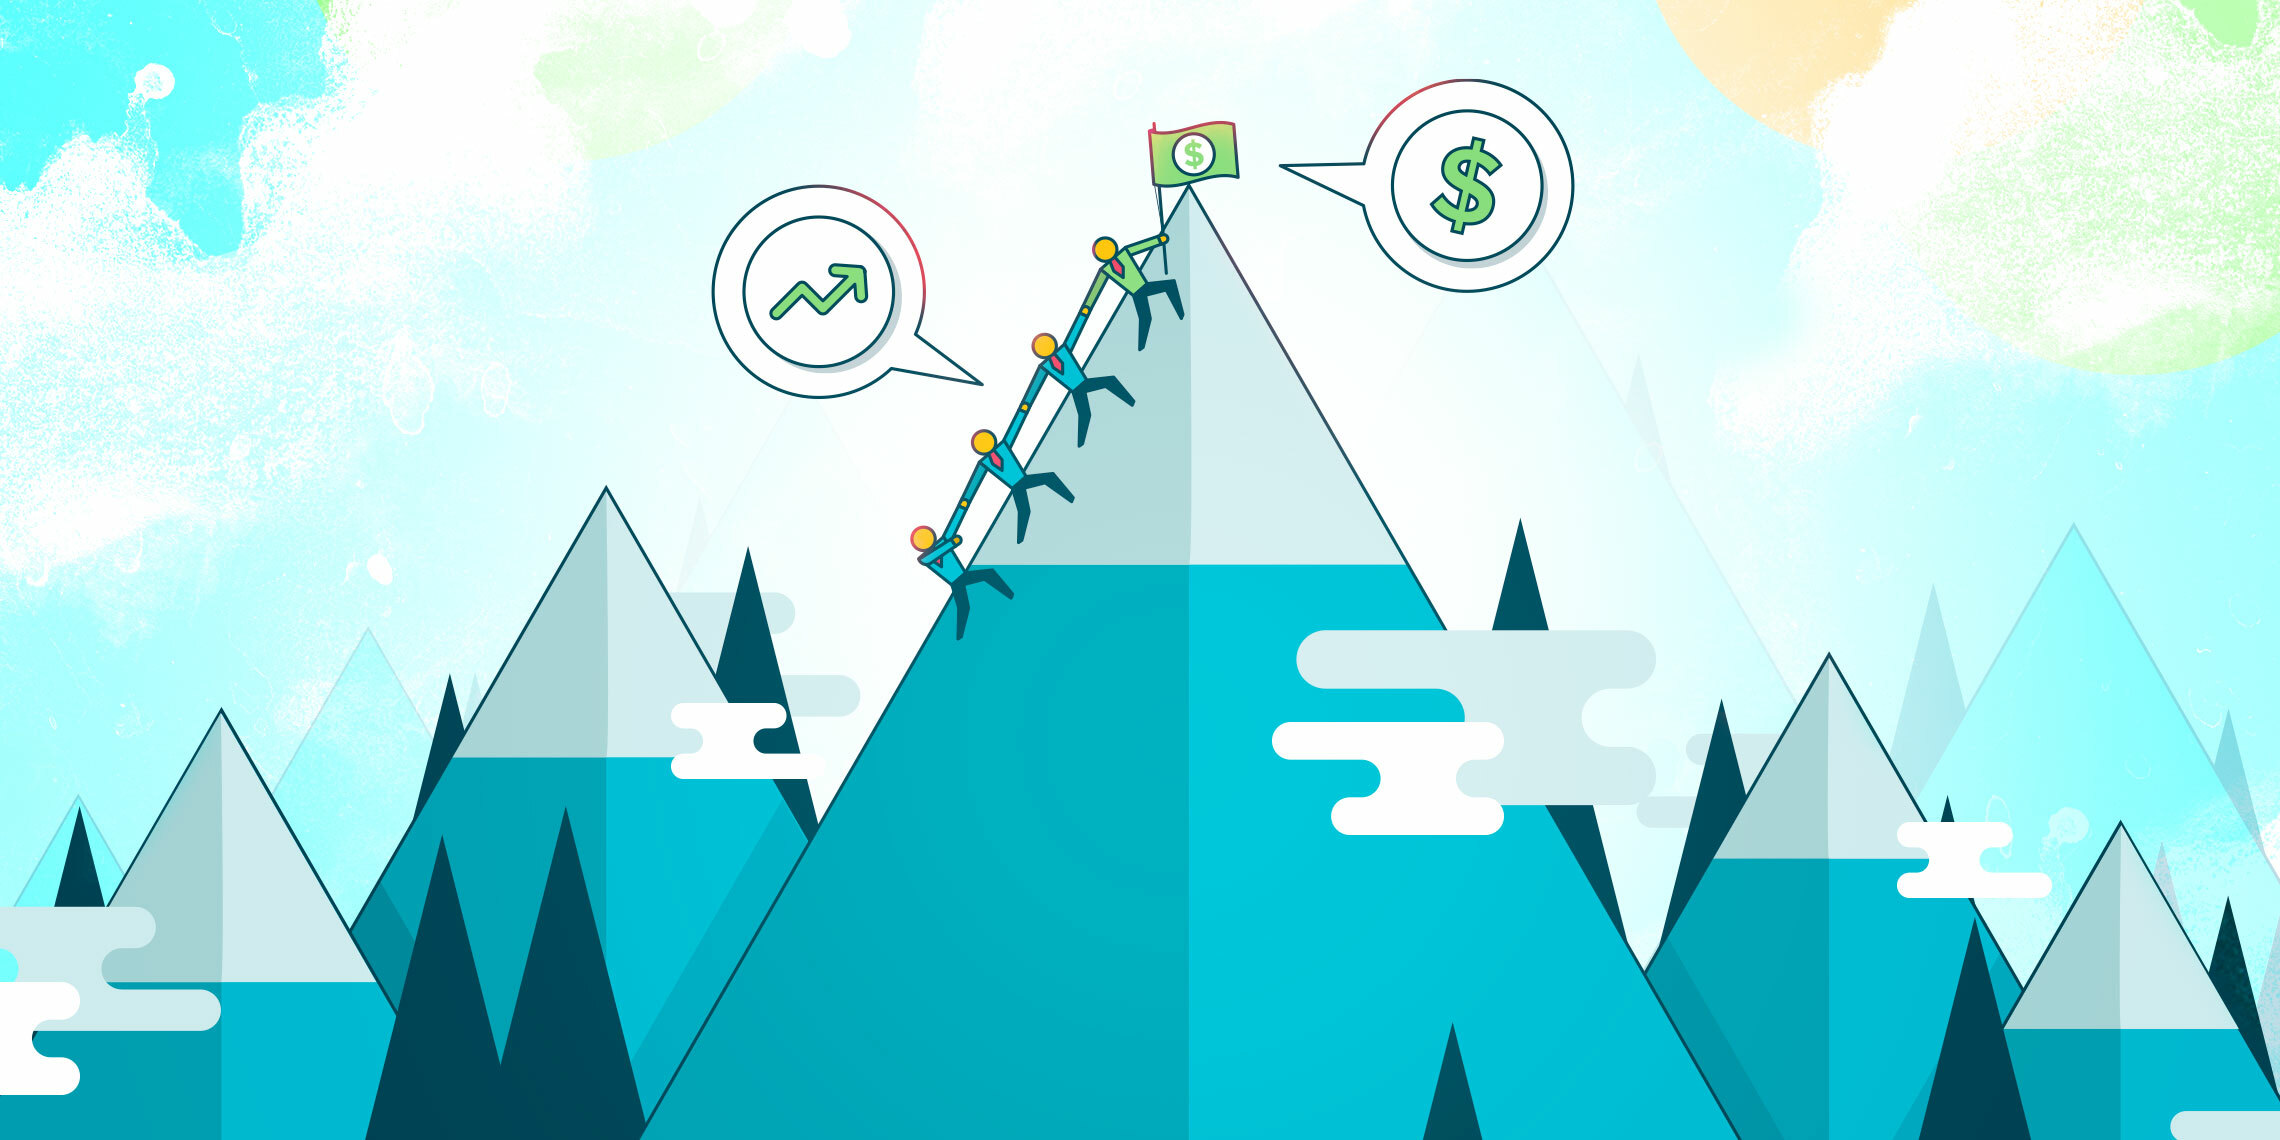 sales leaders getting to the top of a mountain after a sales slump